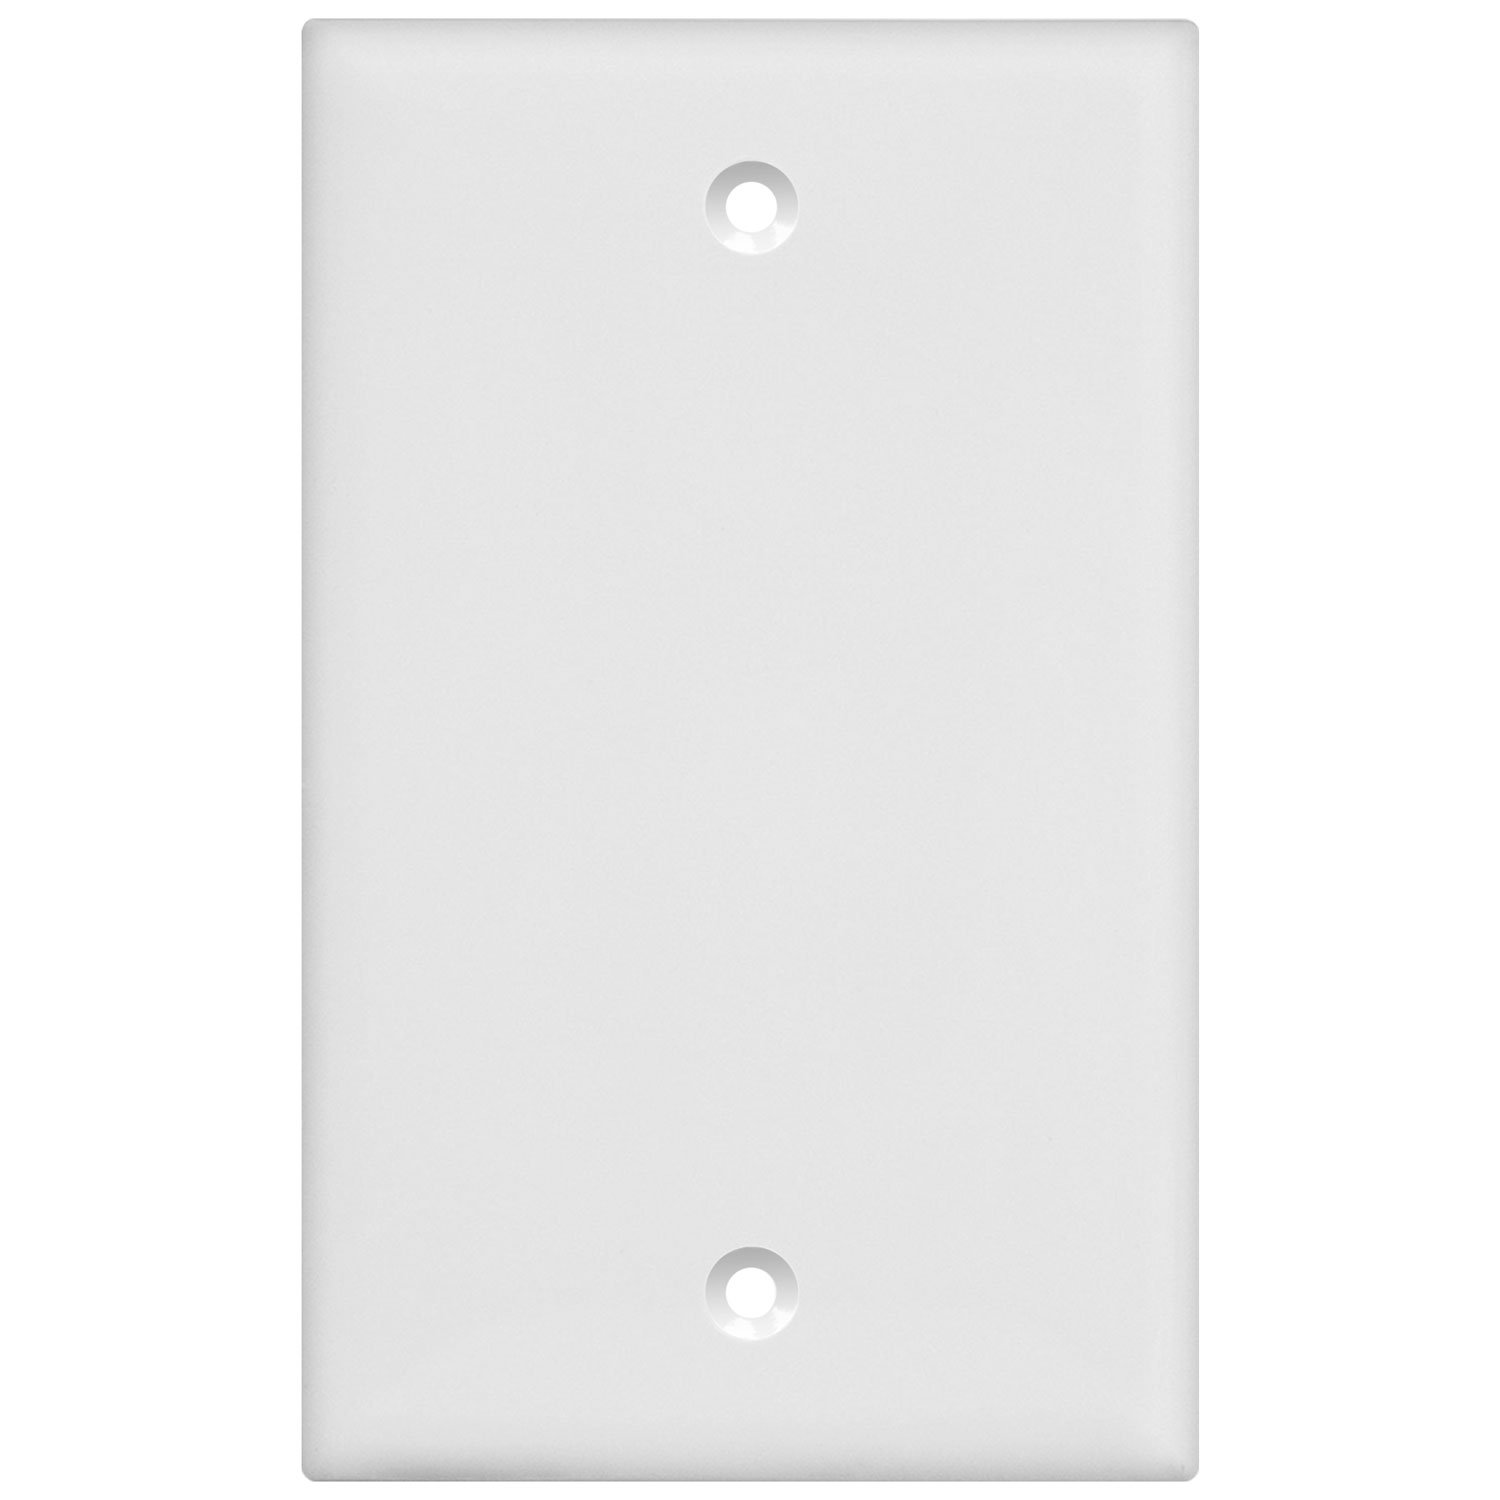 Enerlites 8801-W-10PCS Blank Cover Wall Plate, Standard Size 1-Gang, Polycarbonate Thermoplastic, White (10 Pack) by Enerlites (Image #9)